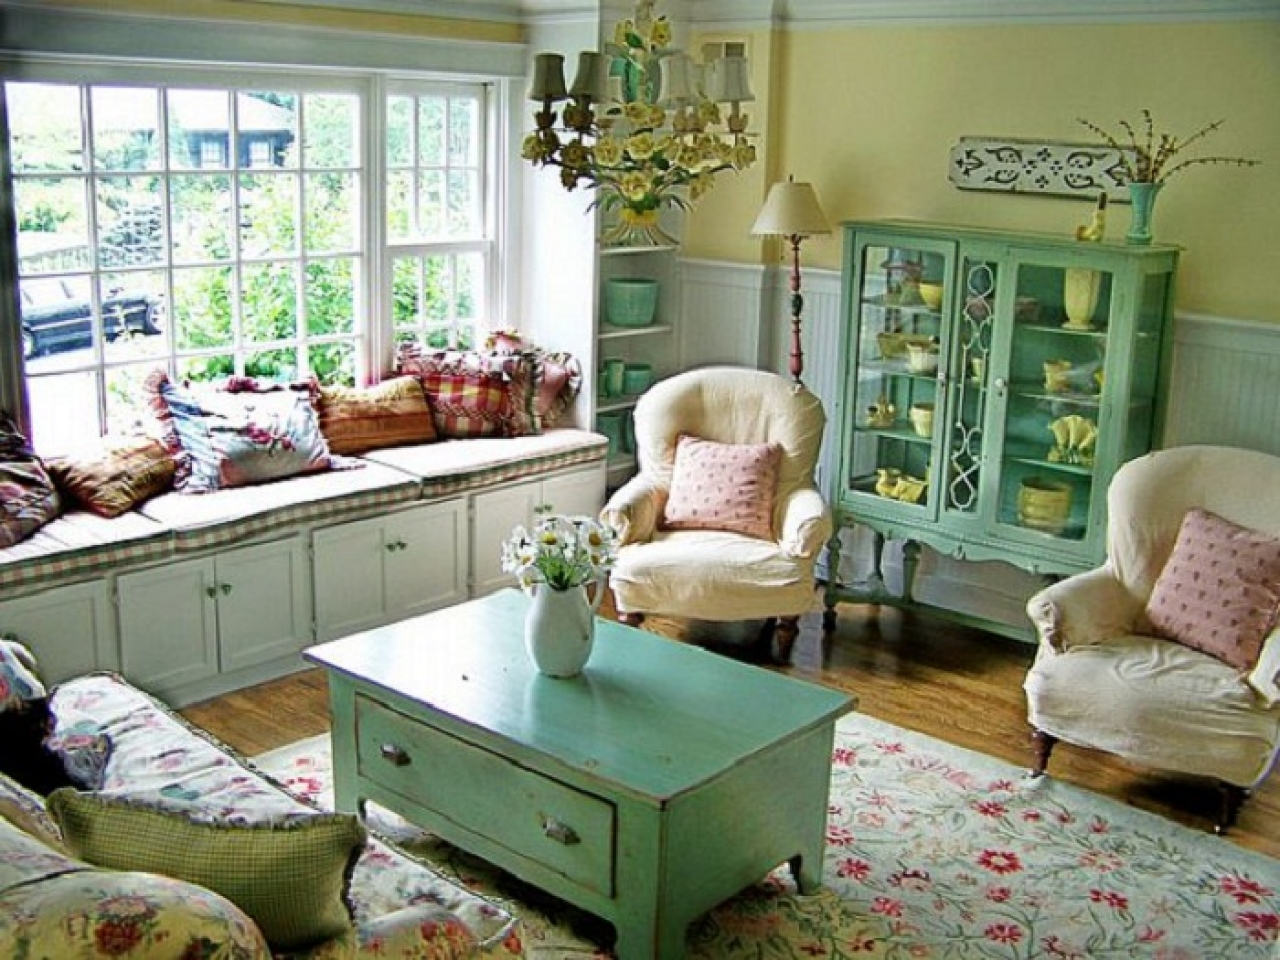 Country cottage living room decorating ideas english for Country cottage living room decorating ideas